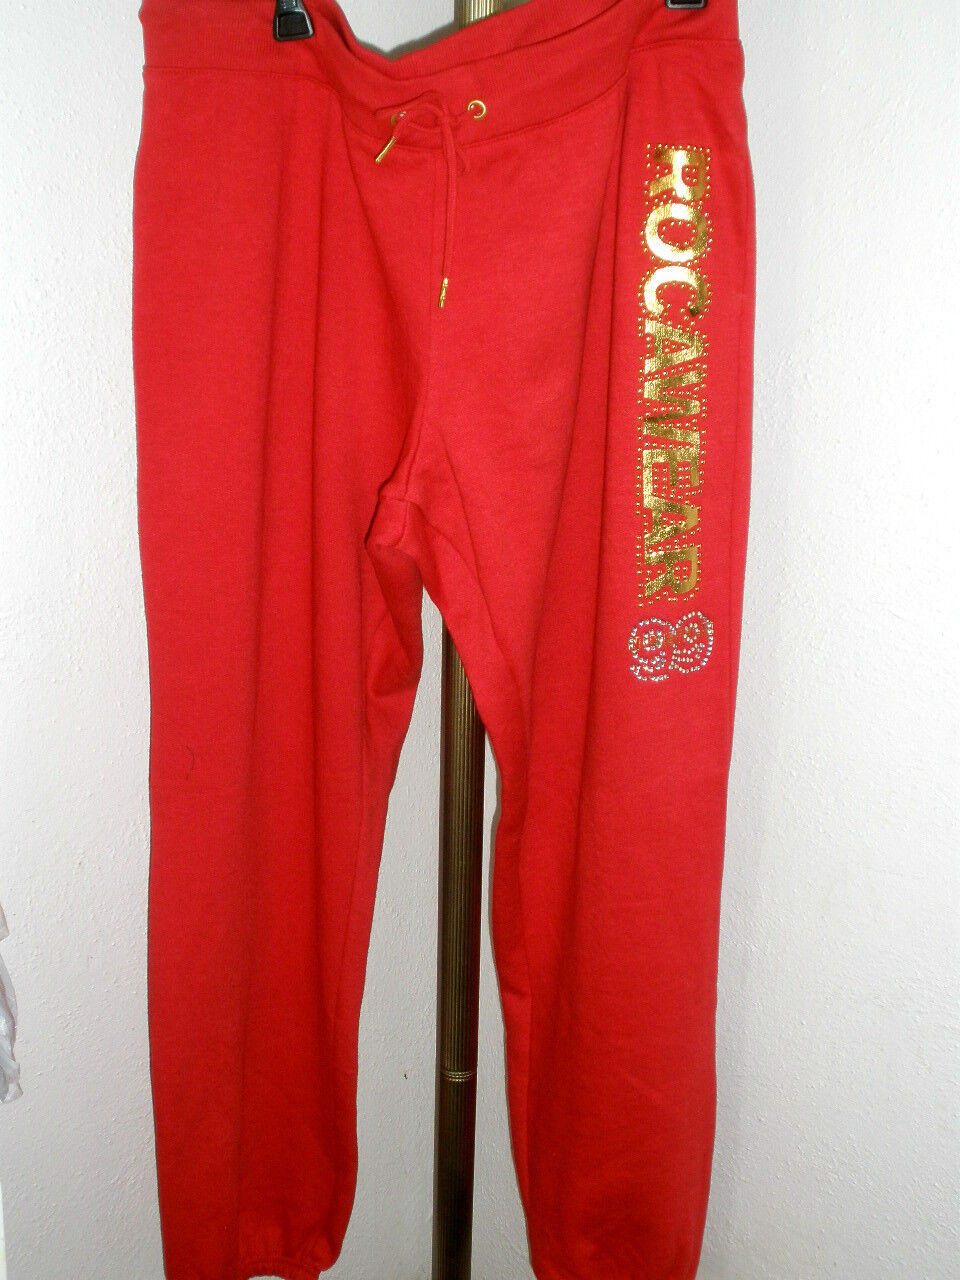 NWT Womens Rocawear Sweat Pants - Red w gold Size 2X (MSRP )